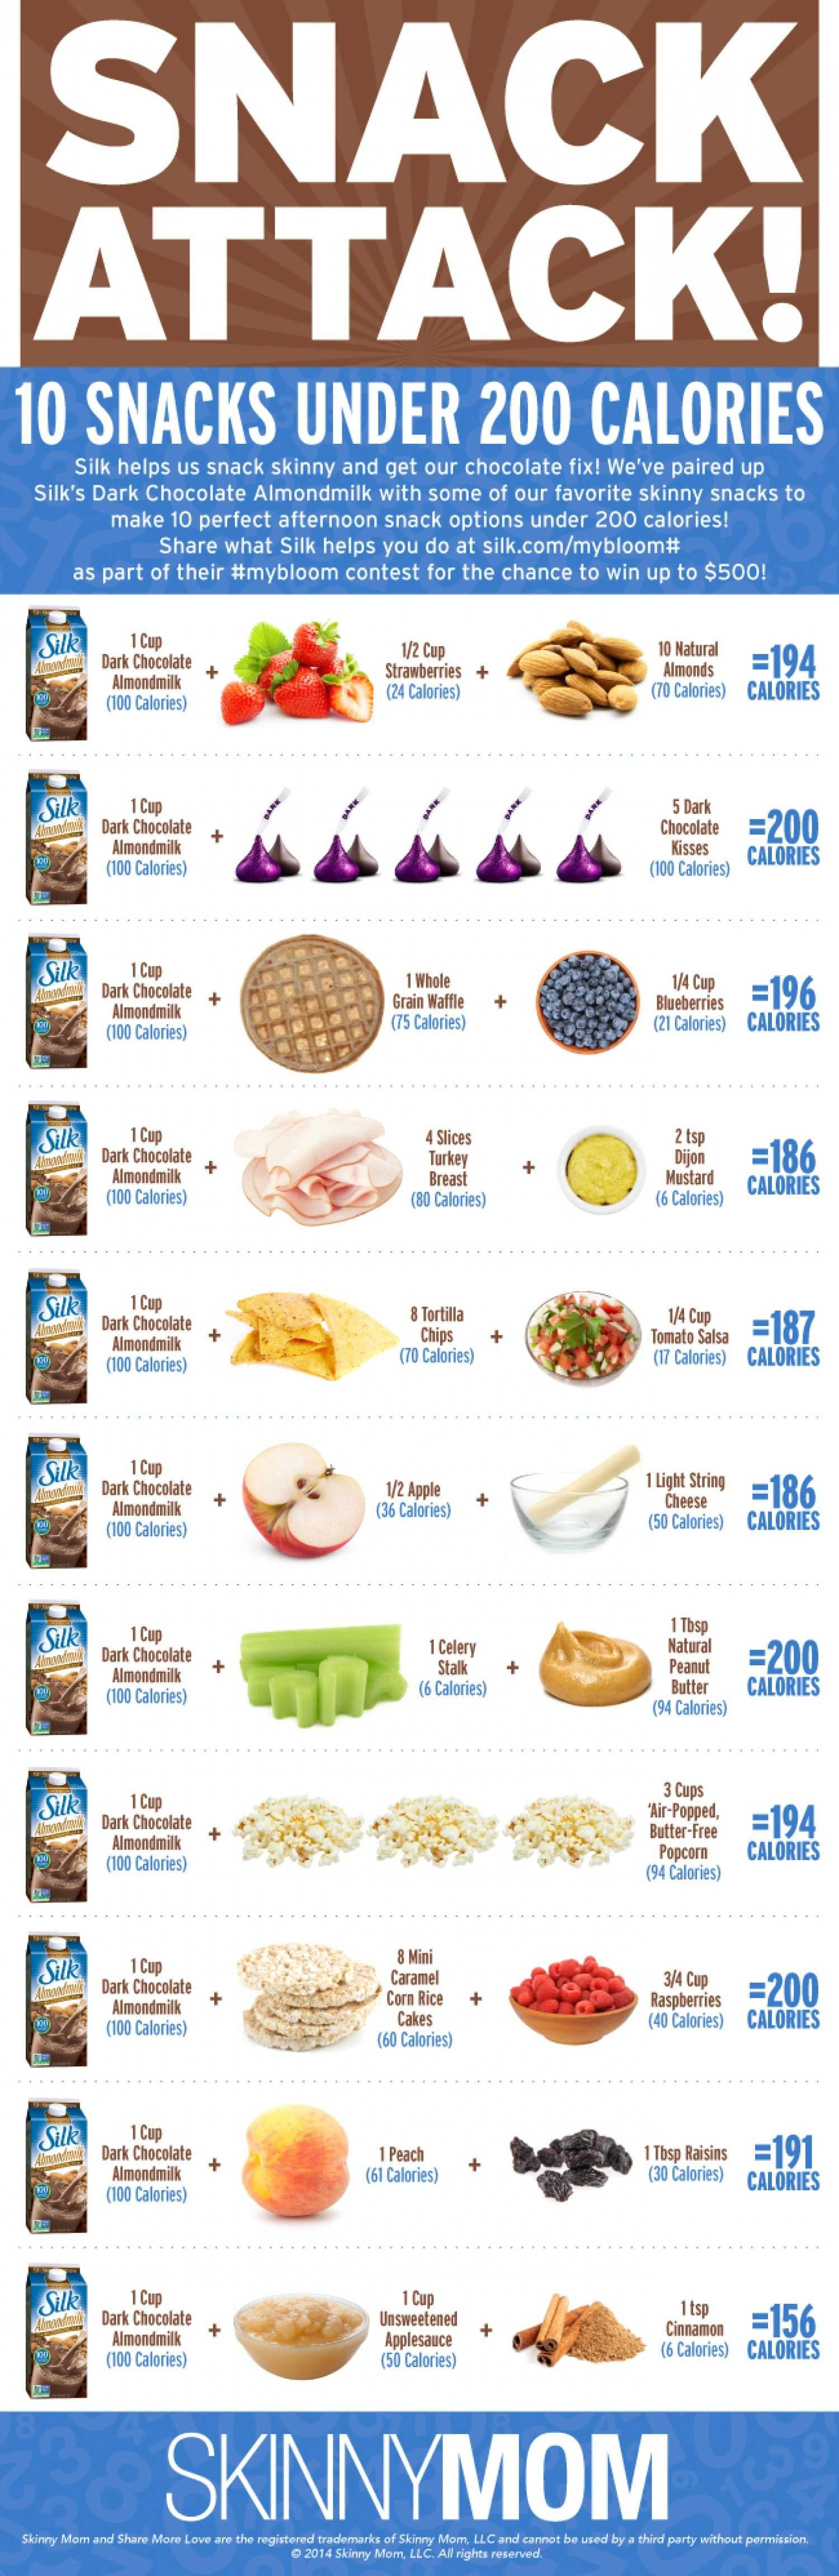 10 Snacks Under 200 Calories